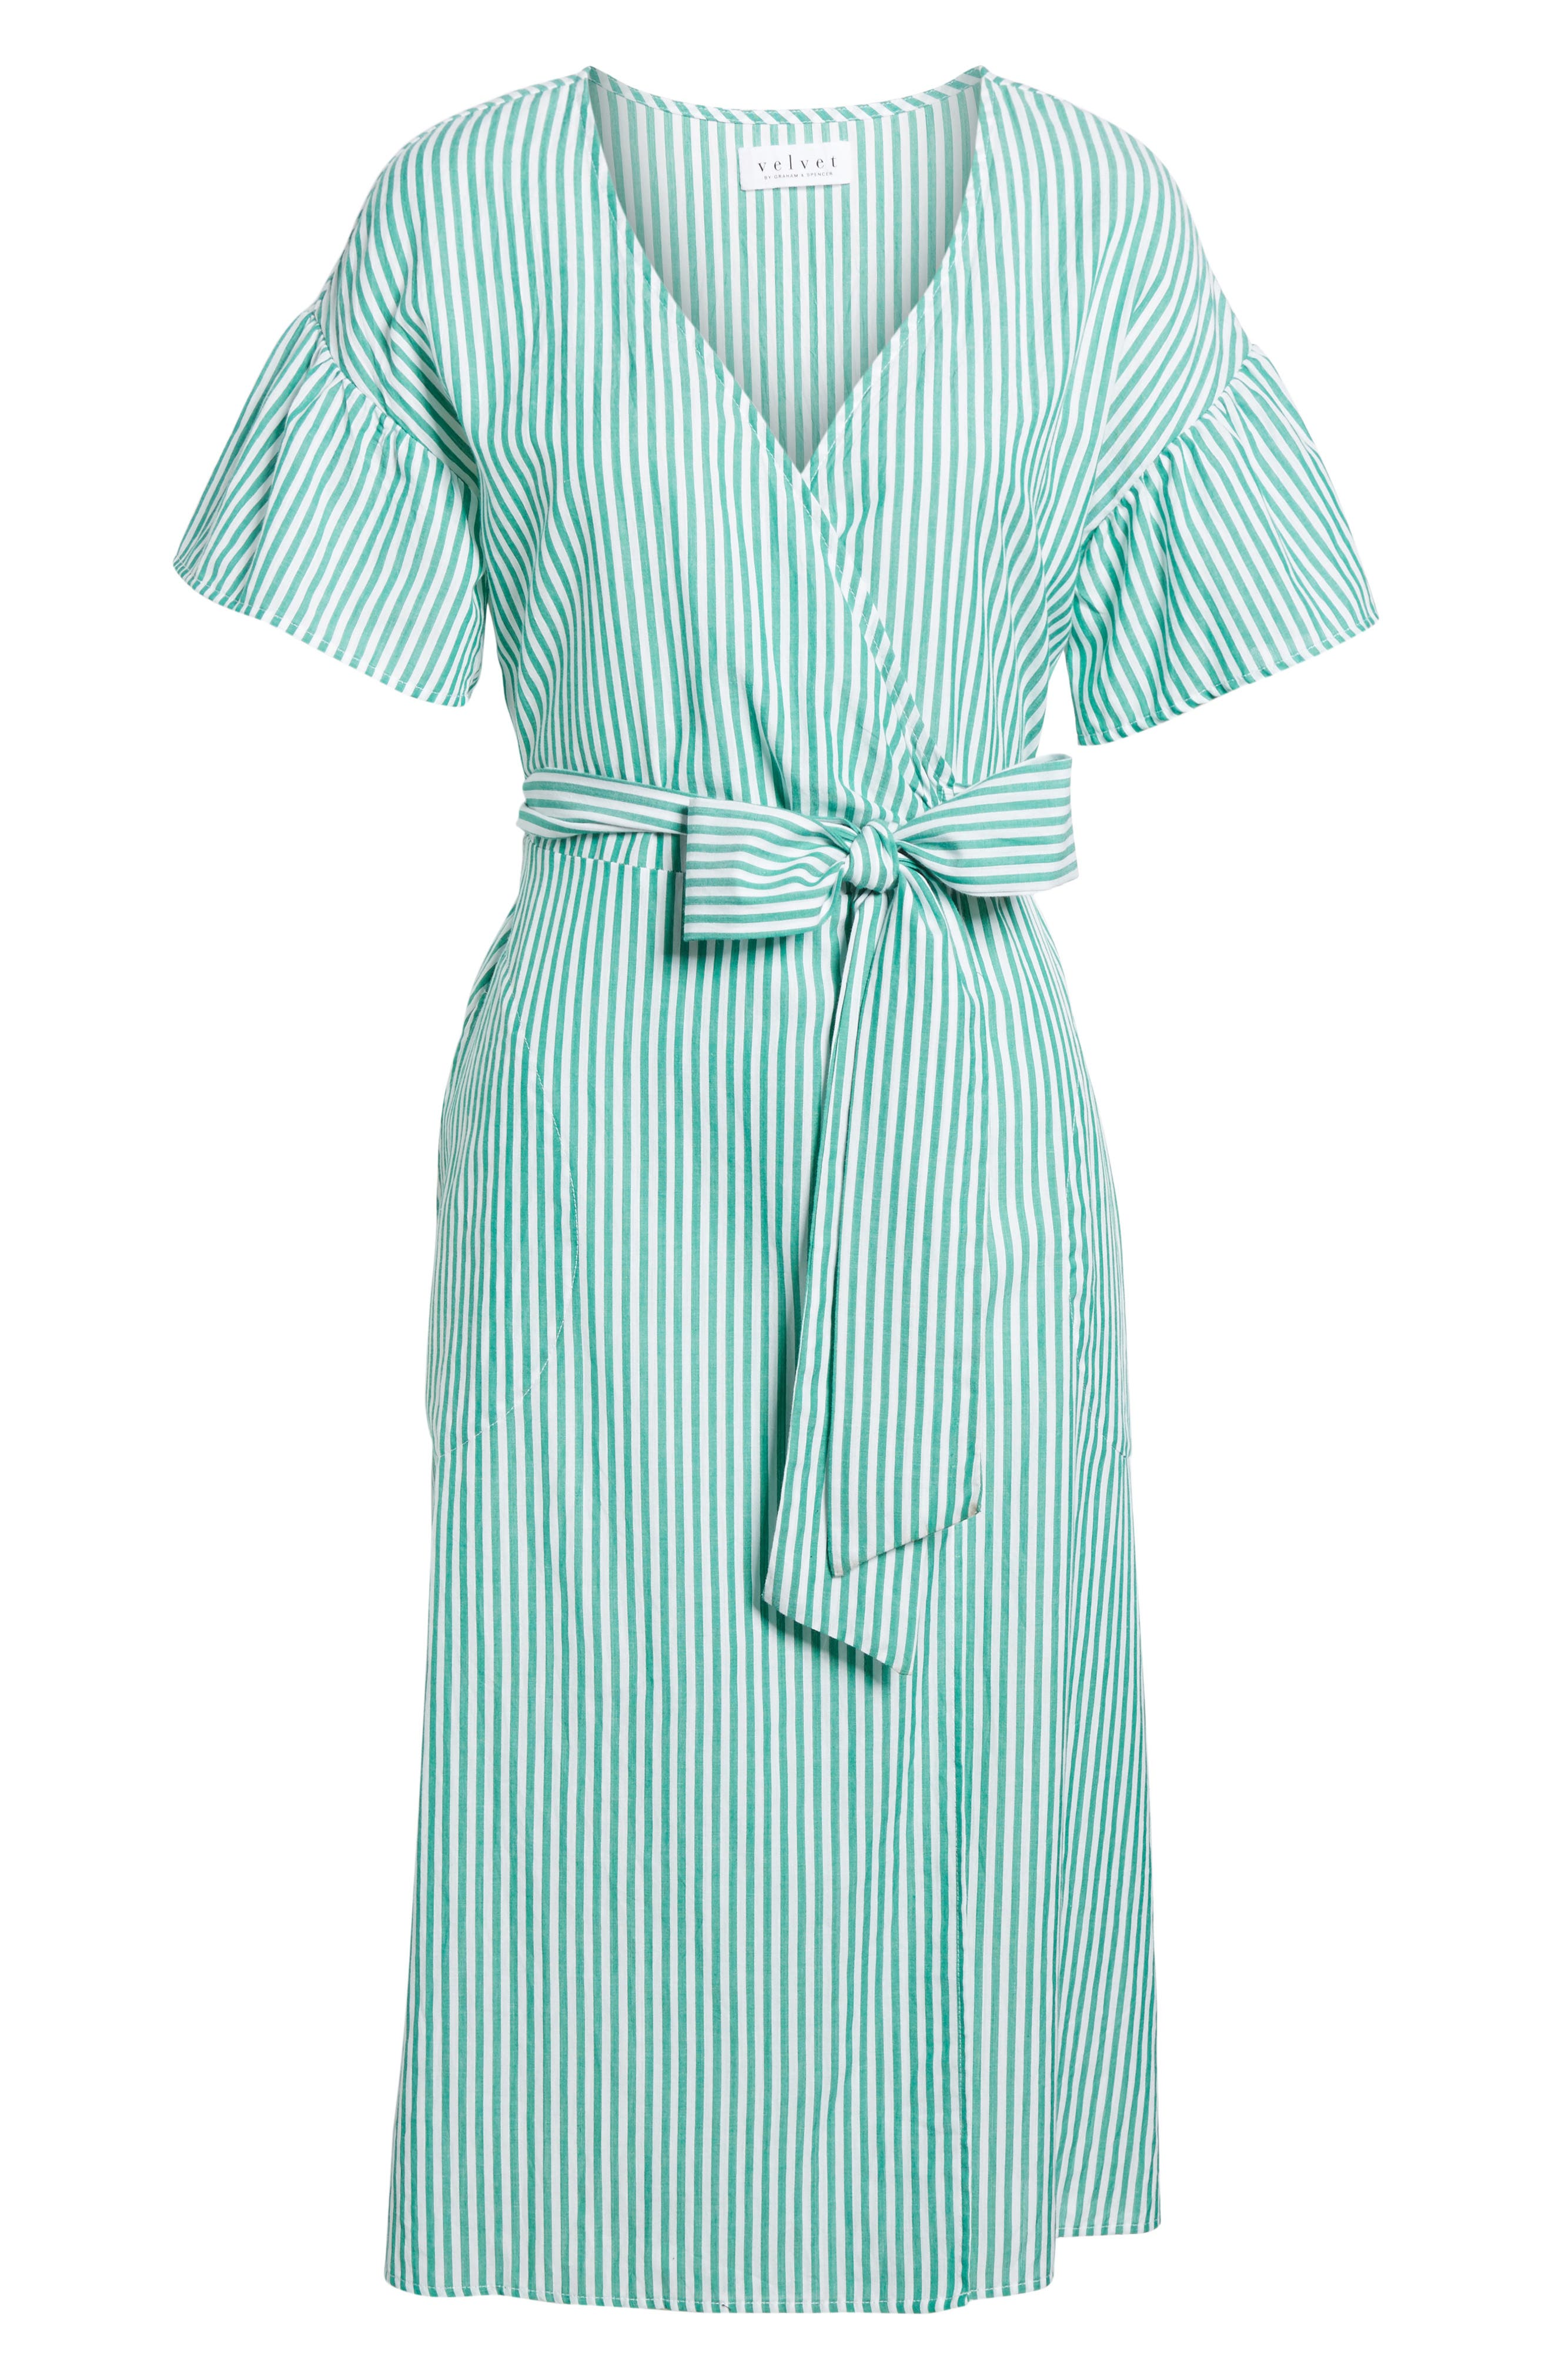 Stripe Cotton Wrap Dress,                             Alternate thumbnail 7, color,                             Green